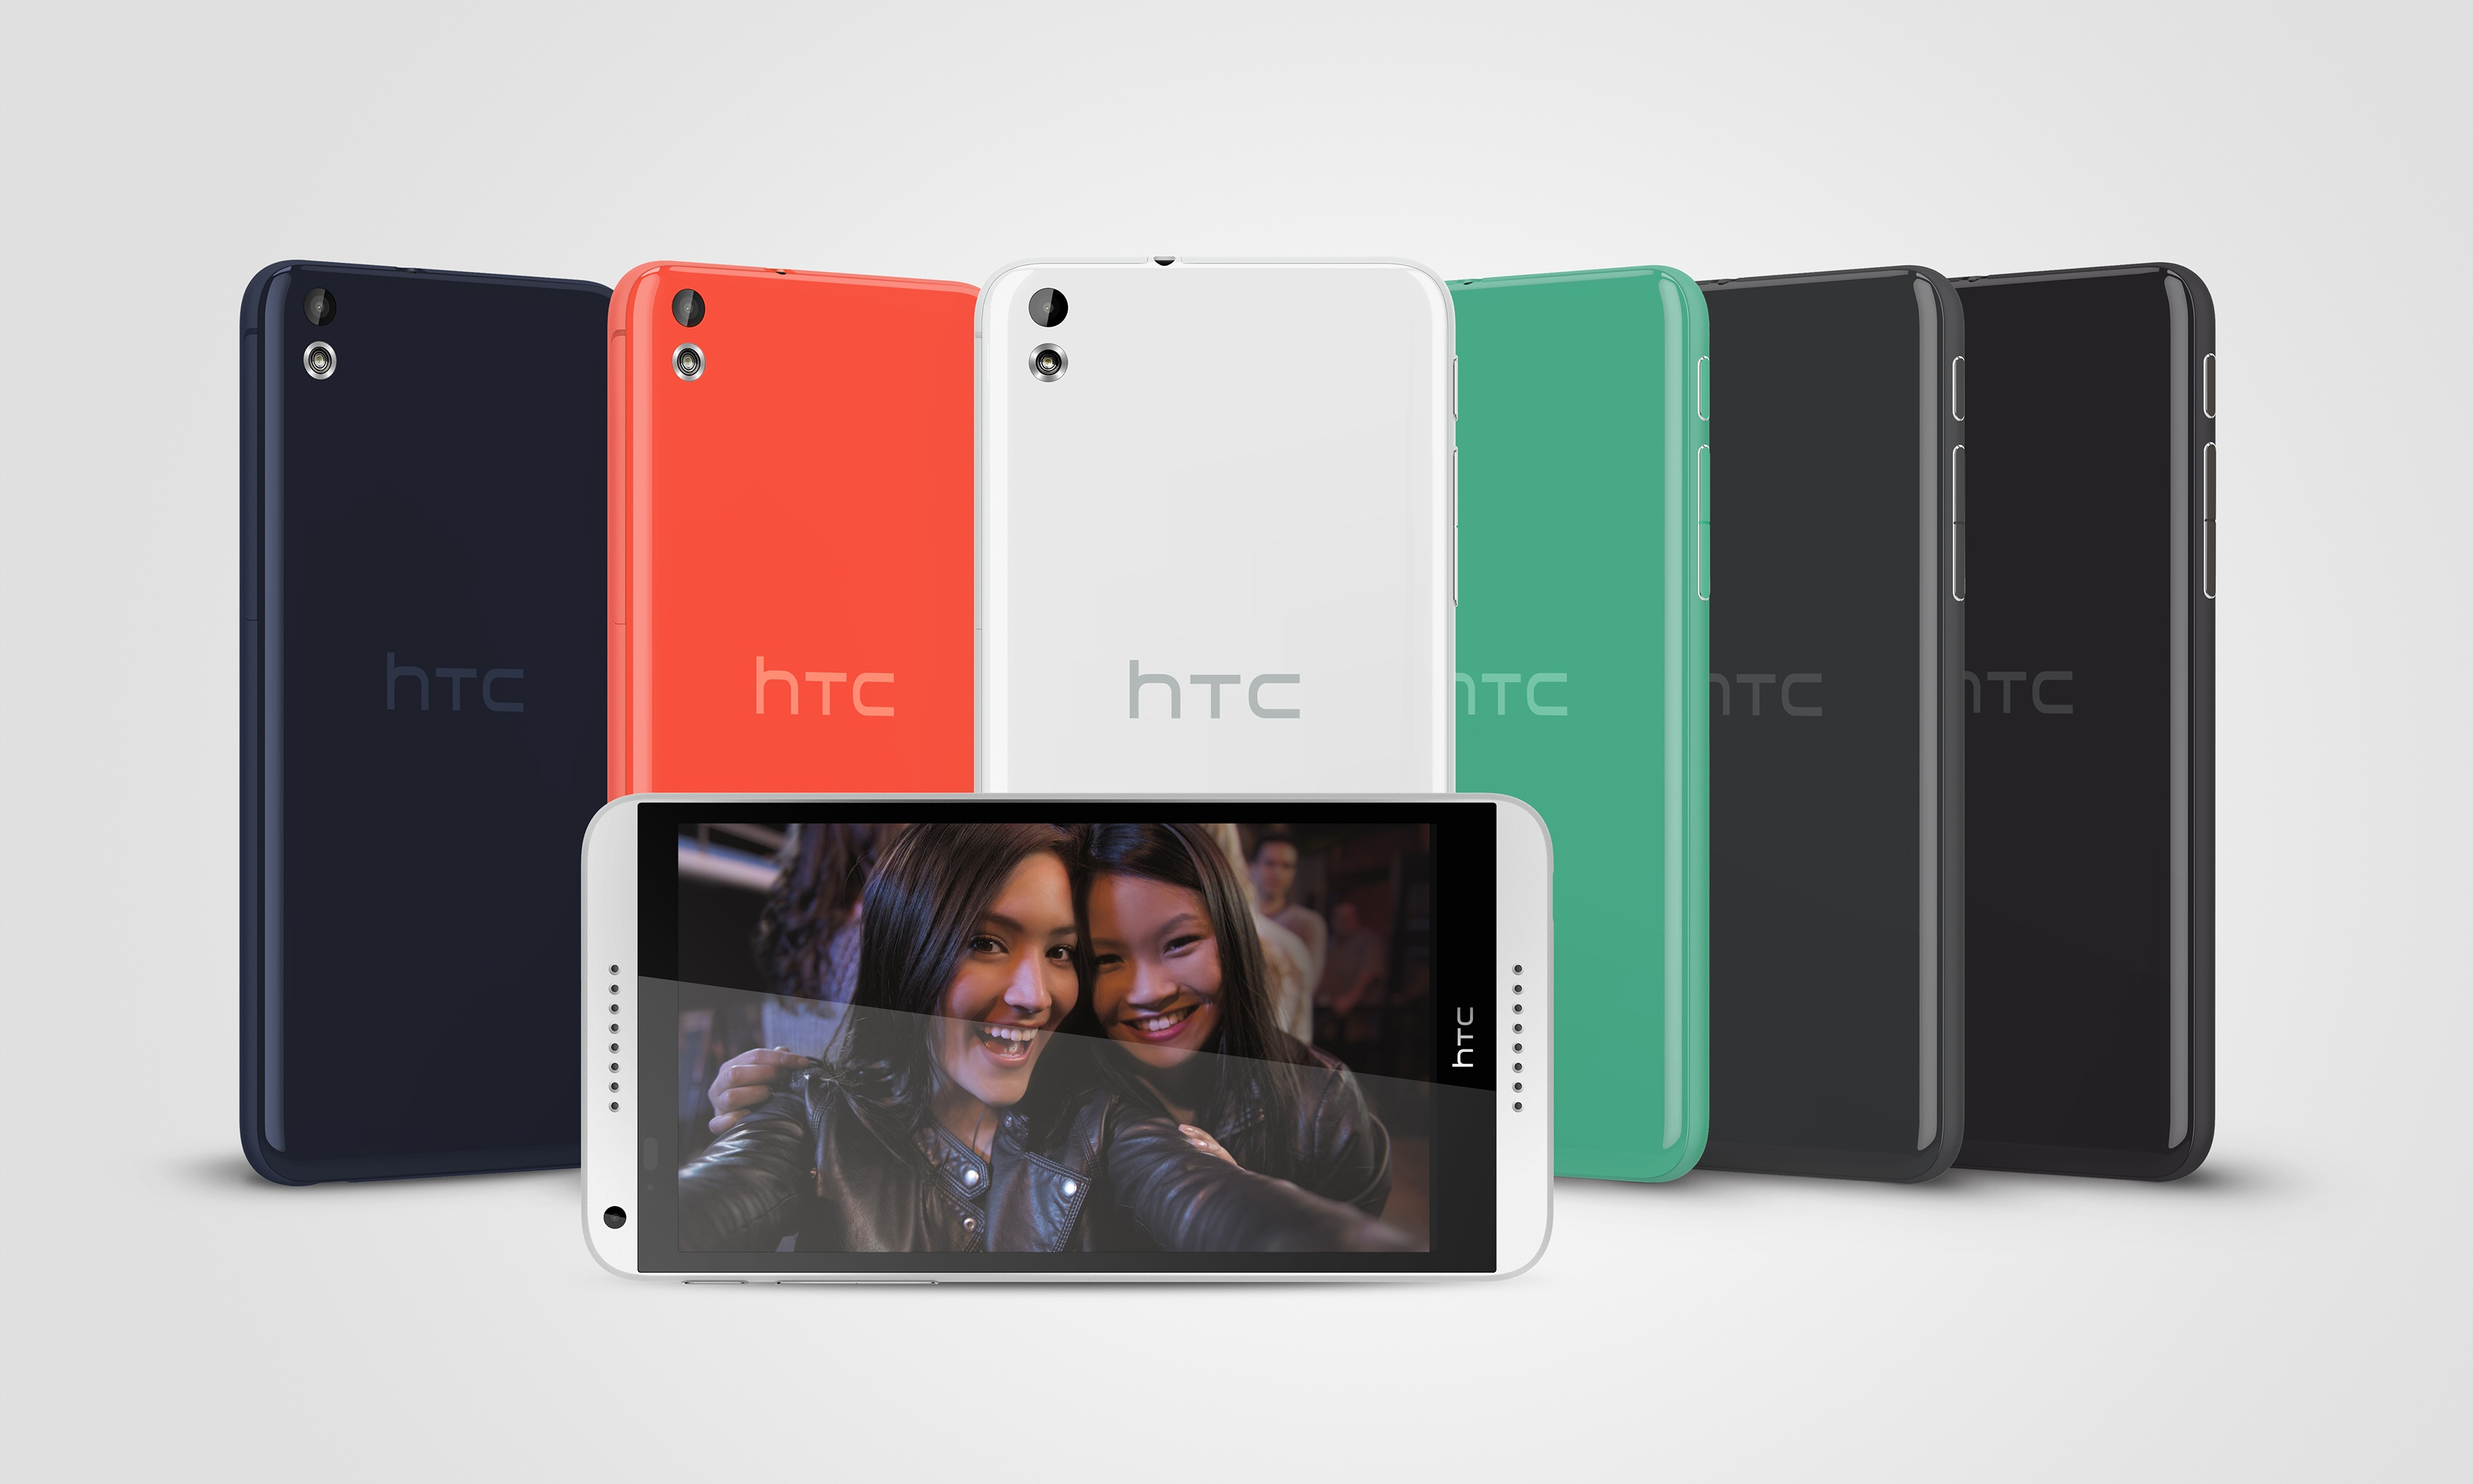 HTC unveiled a new mid-range phone at Mobile World Congress called the Desire 816.